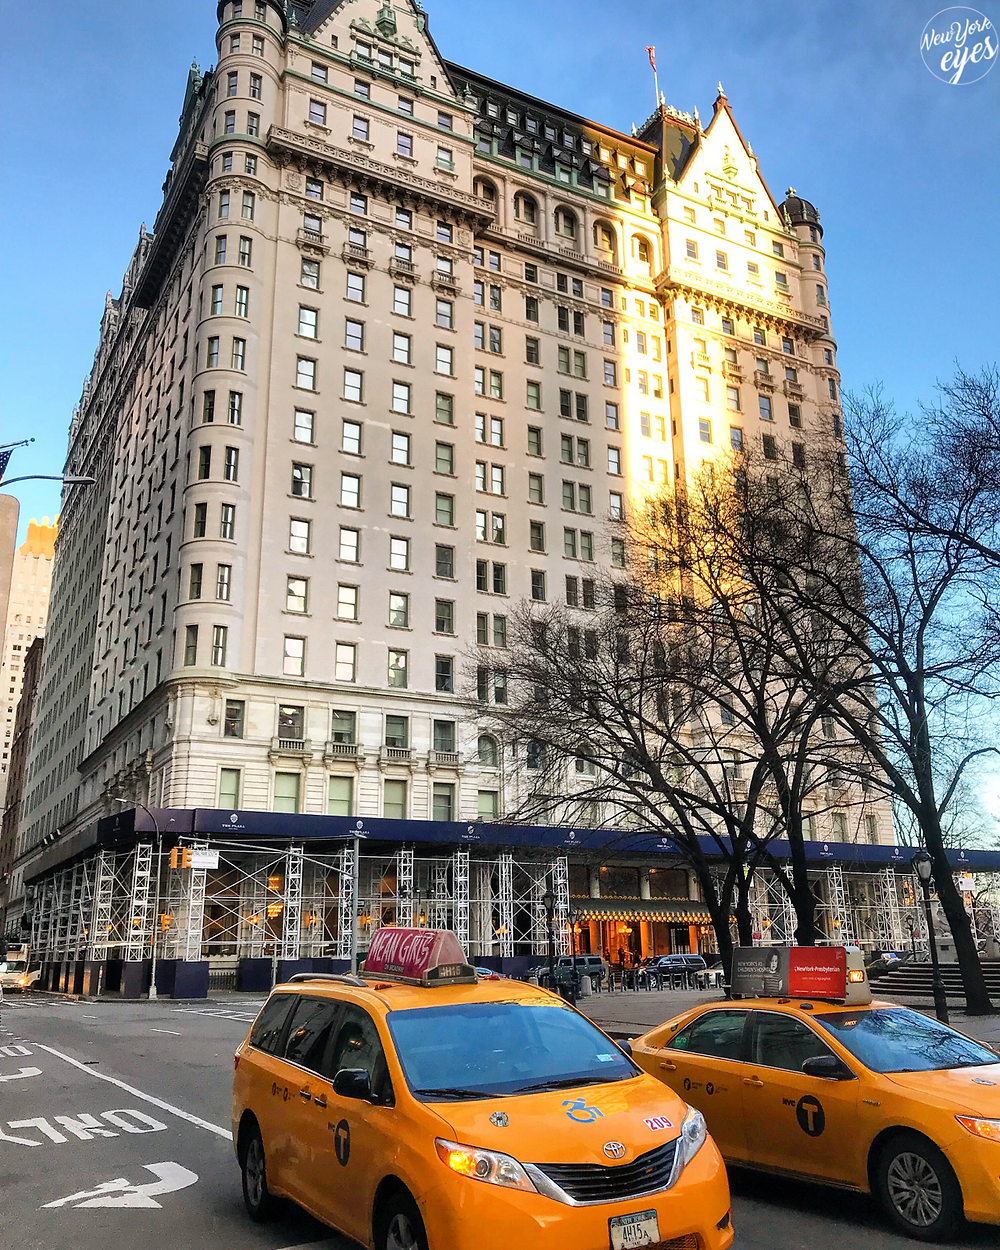 The Plaza Hotel (Feb 9, 2019)